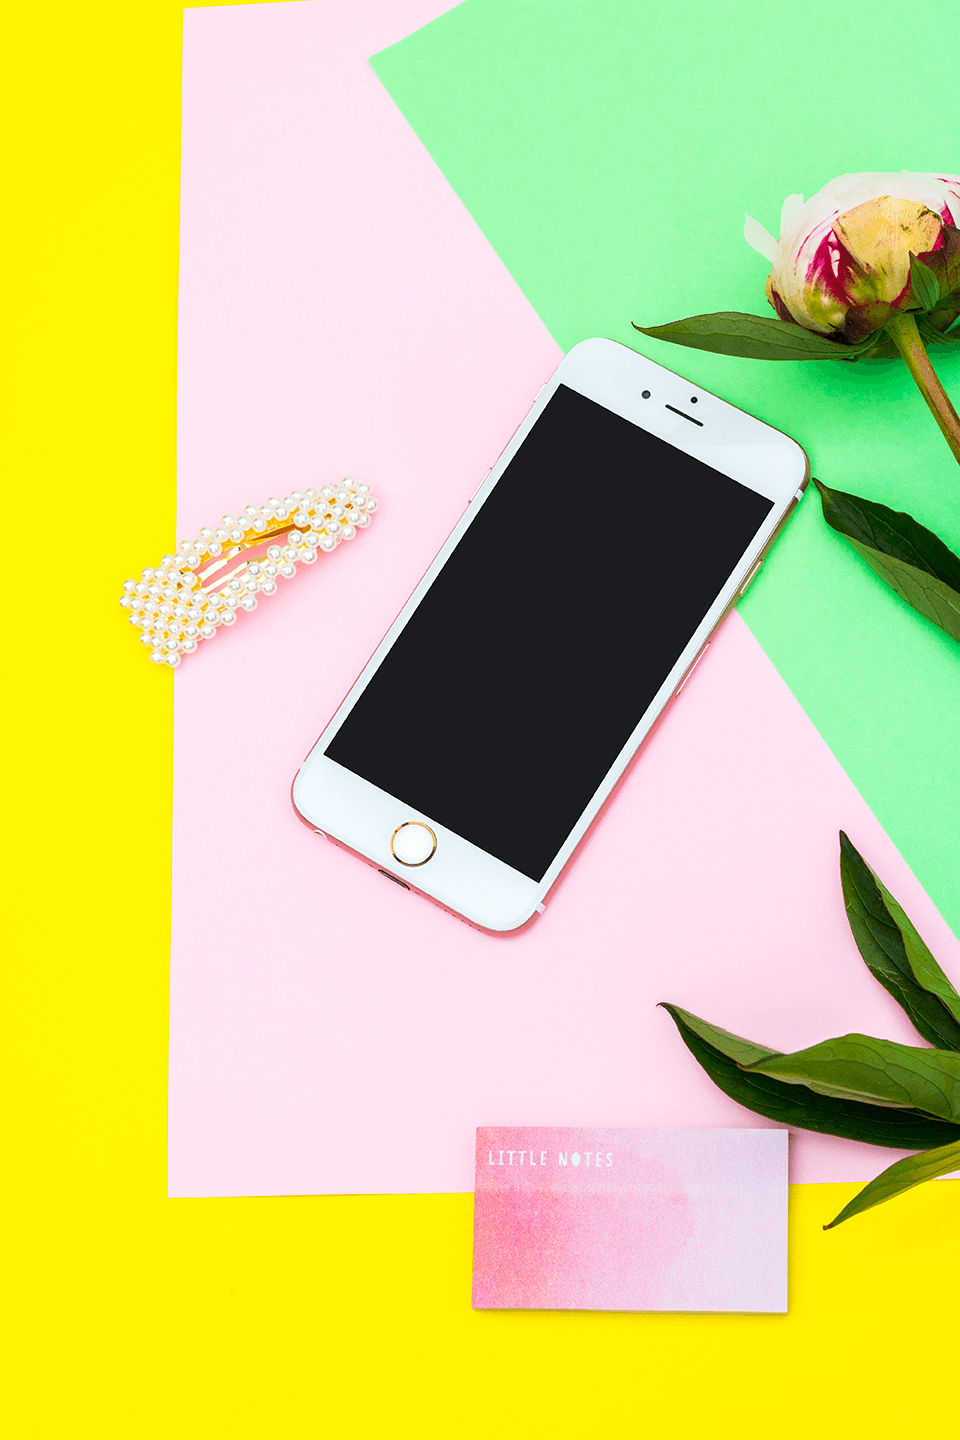 Styled Stock Photography | Colourful Yellow Pink & Green IPHONE Mockup Desk | blogging - Grand & Lovely Stock styled photography desktops lifestyle screens desktops stationary